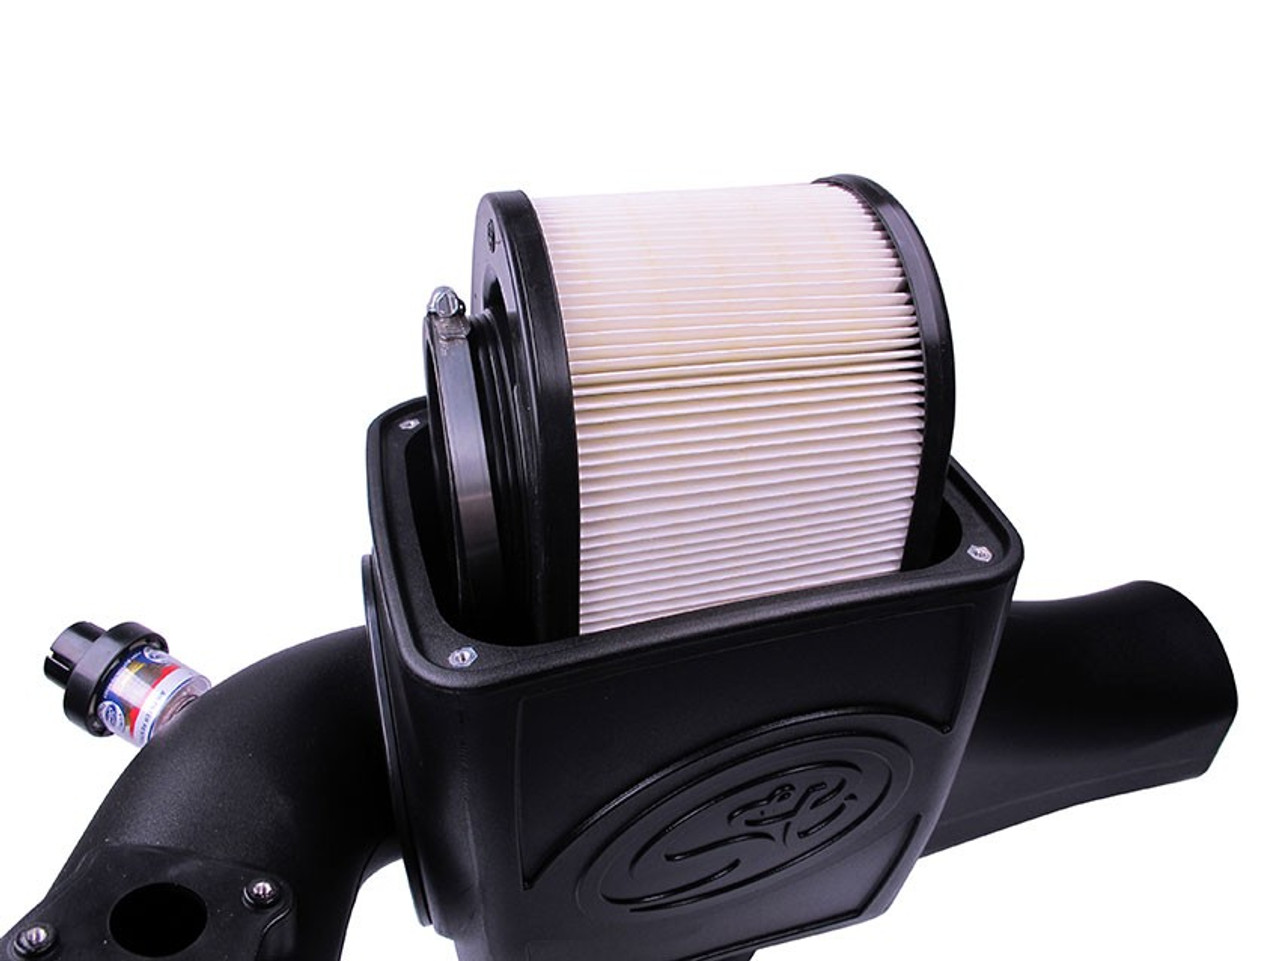 75-5070D - S&B COLD AIR INTAKE FILTER 2003-2007 FORD POWERSTROKE DIESEL F250 F350 6.0L DRY FILTER